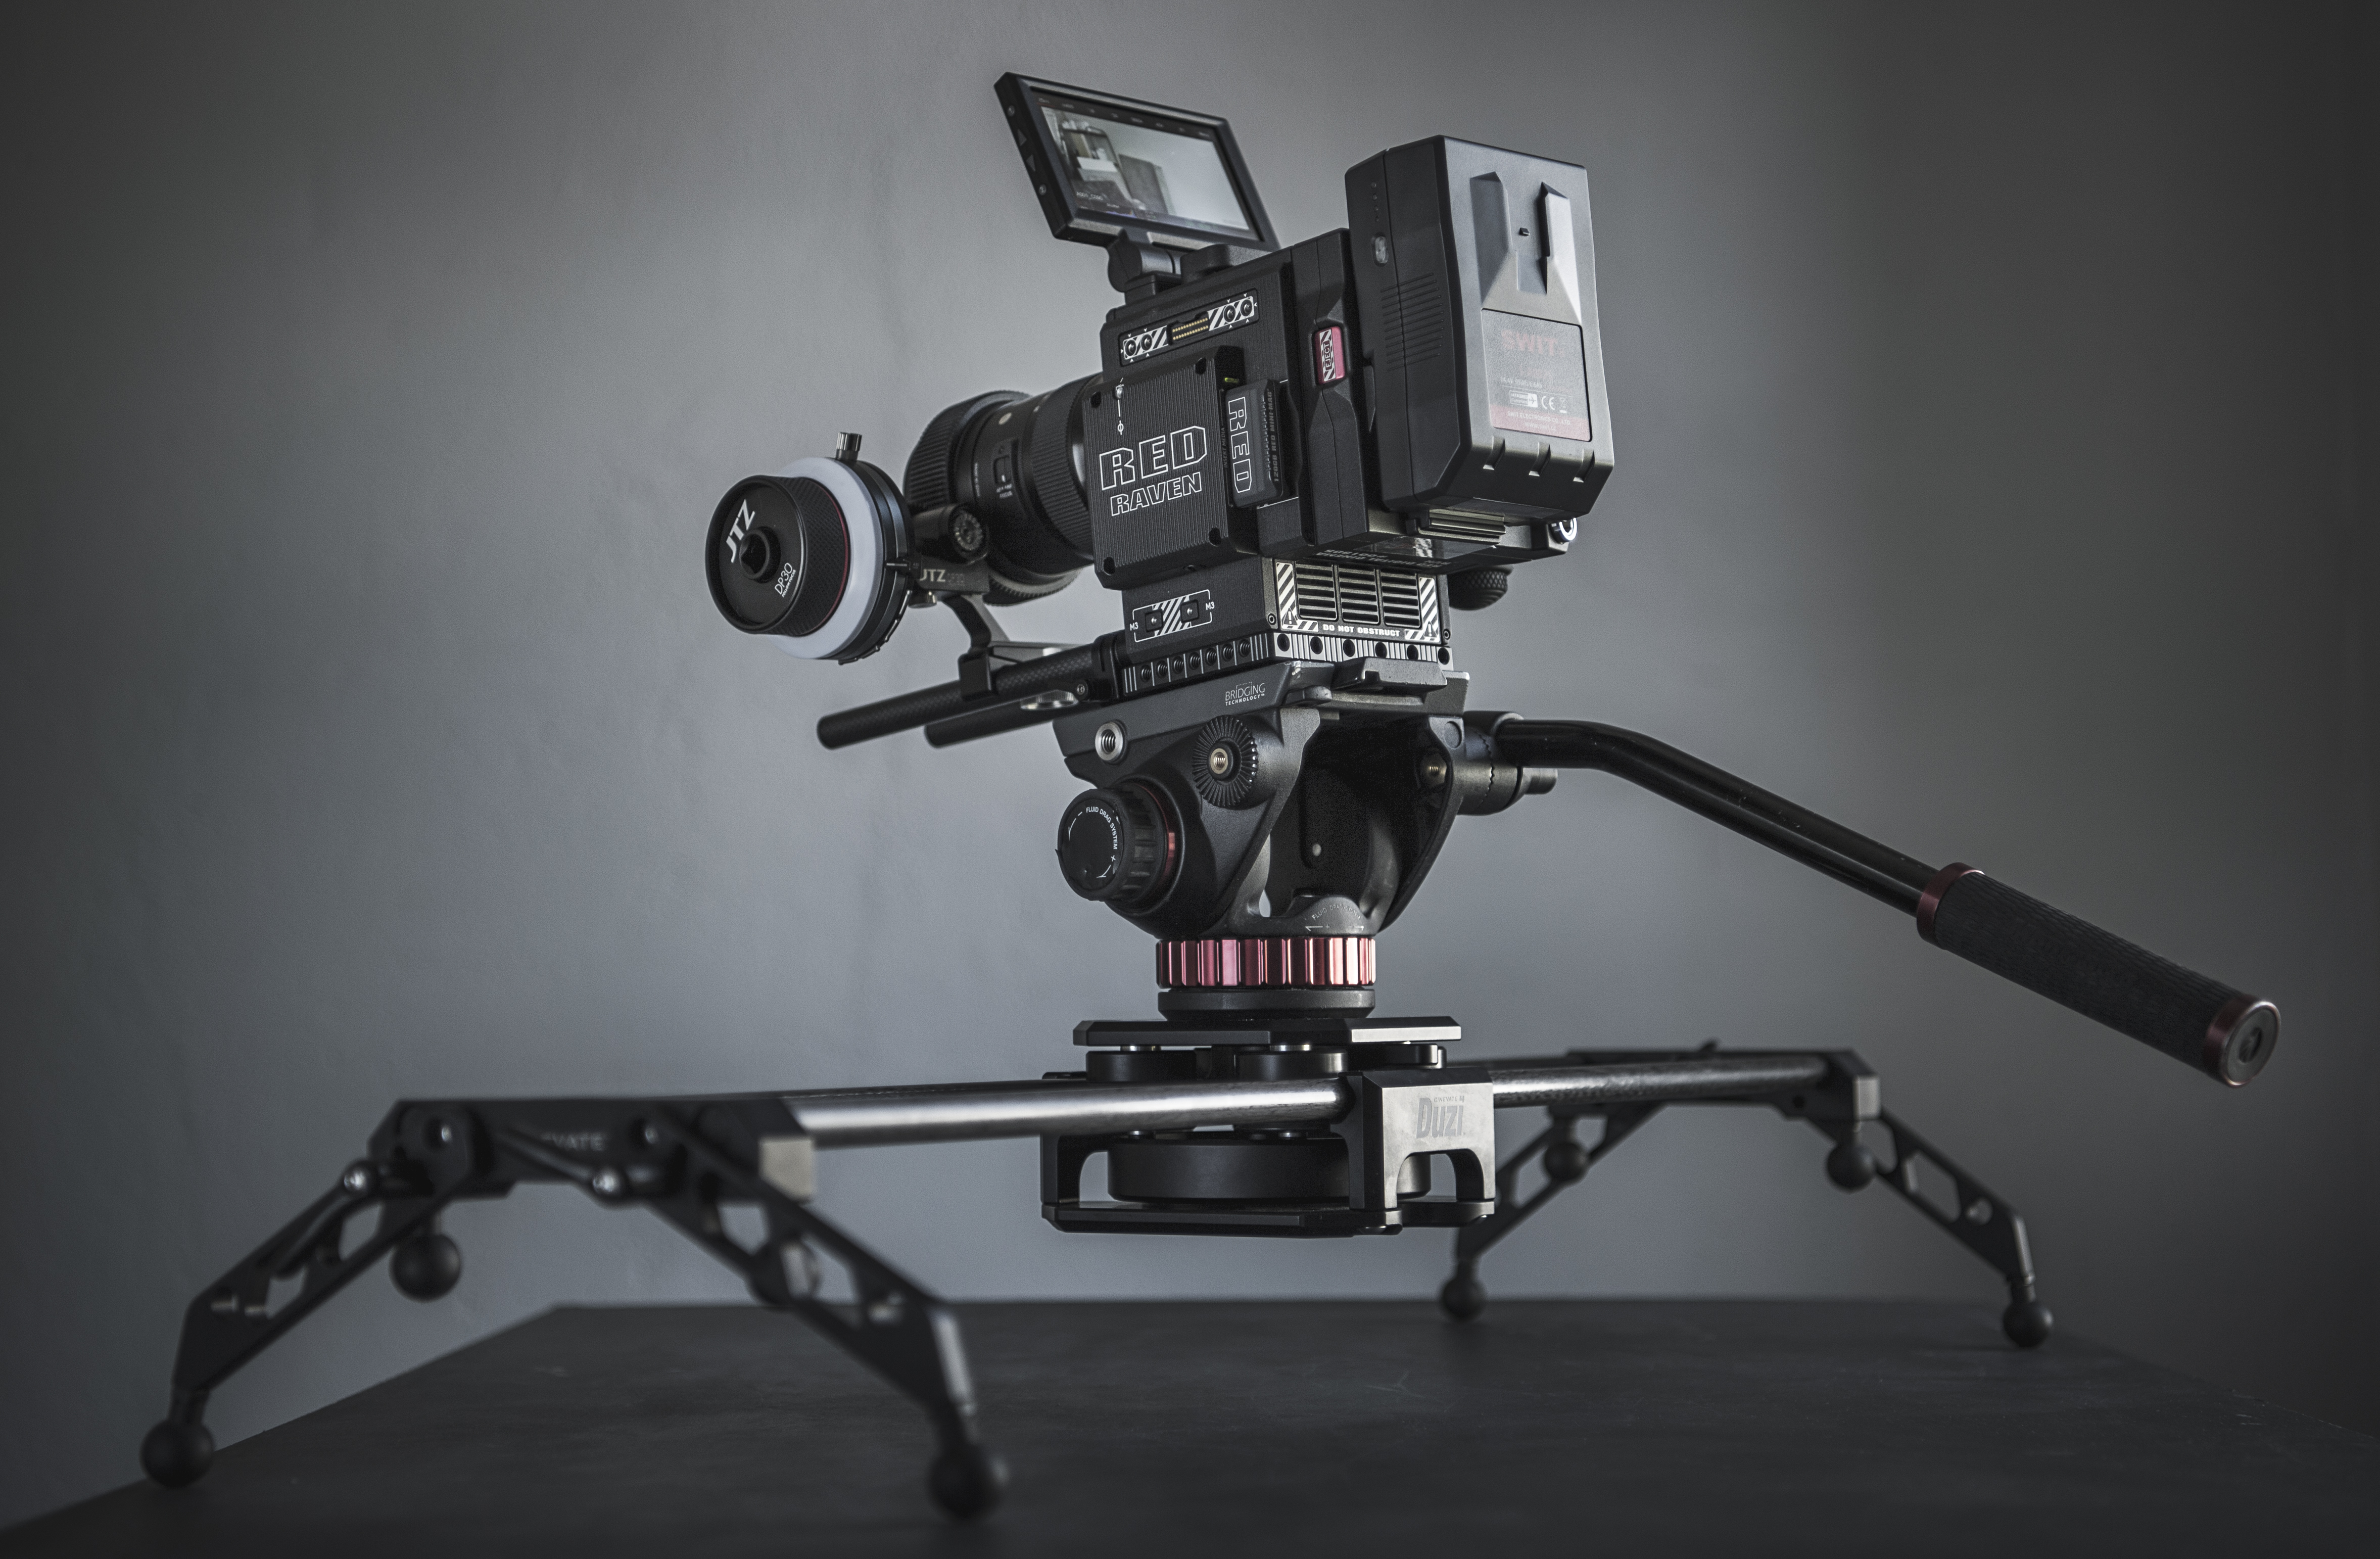 Dollyslider and extra gear